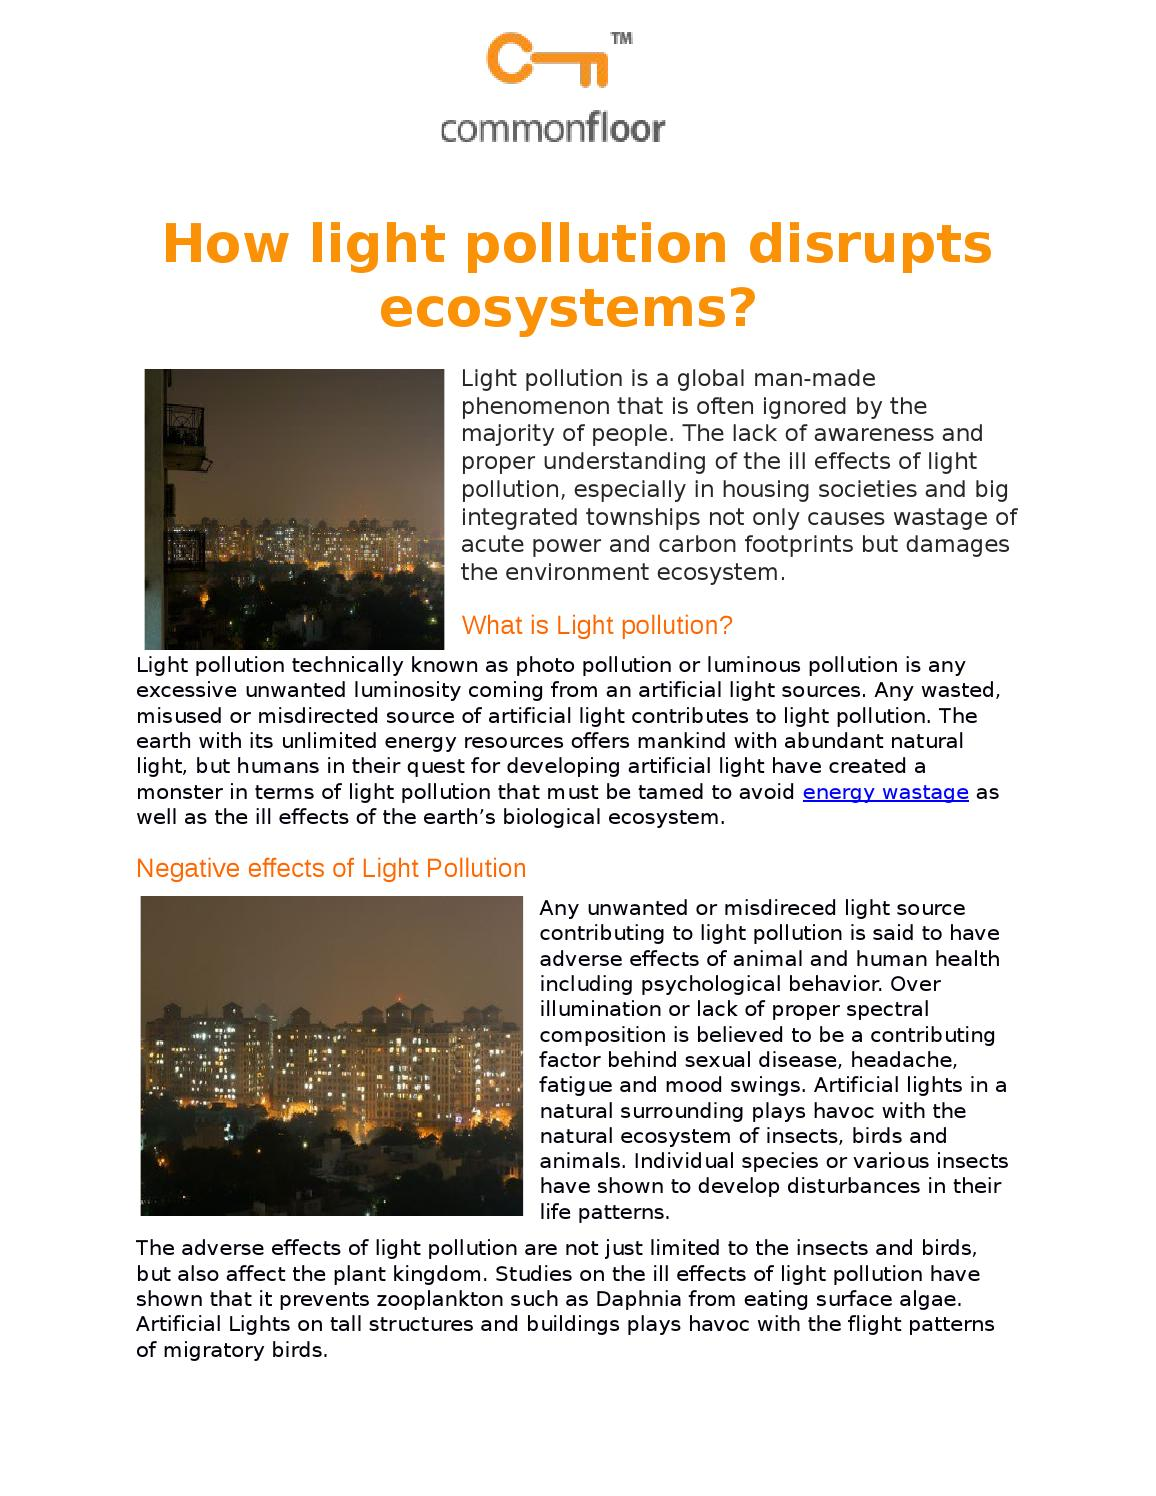 How light pollution disrupts ecosystems? by arica mishra - issuu